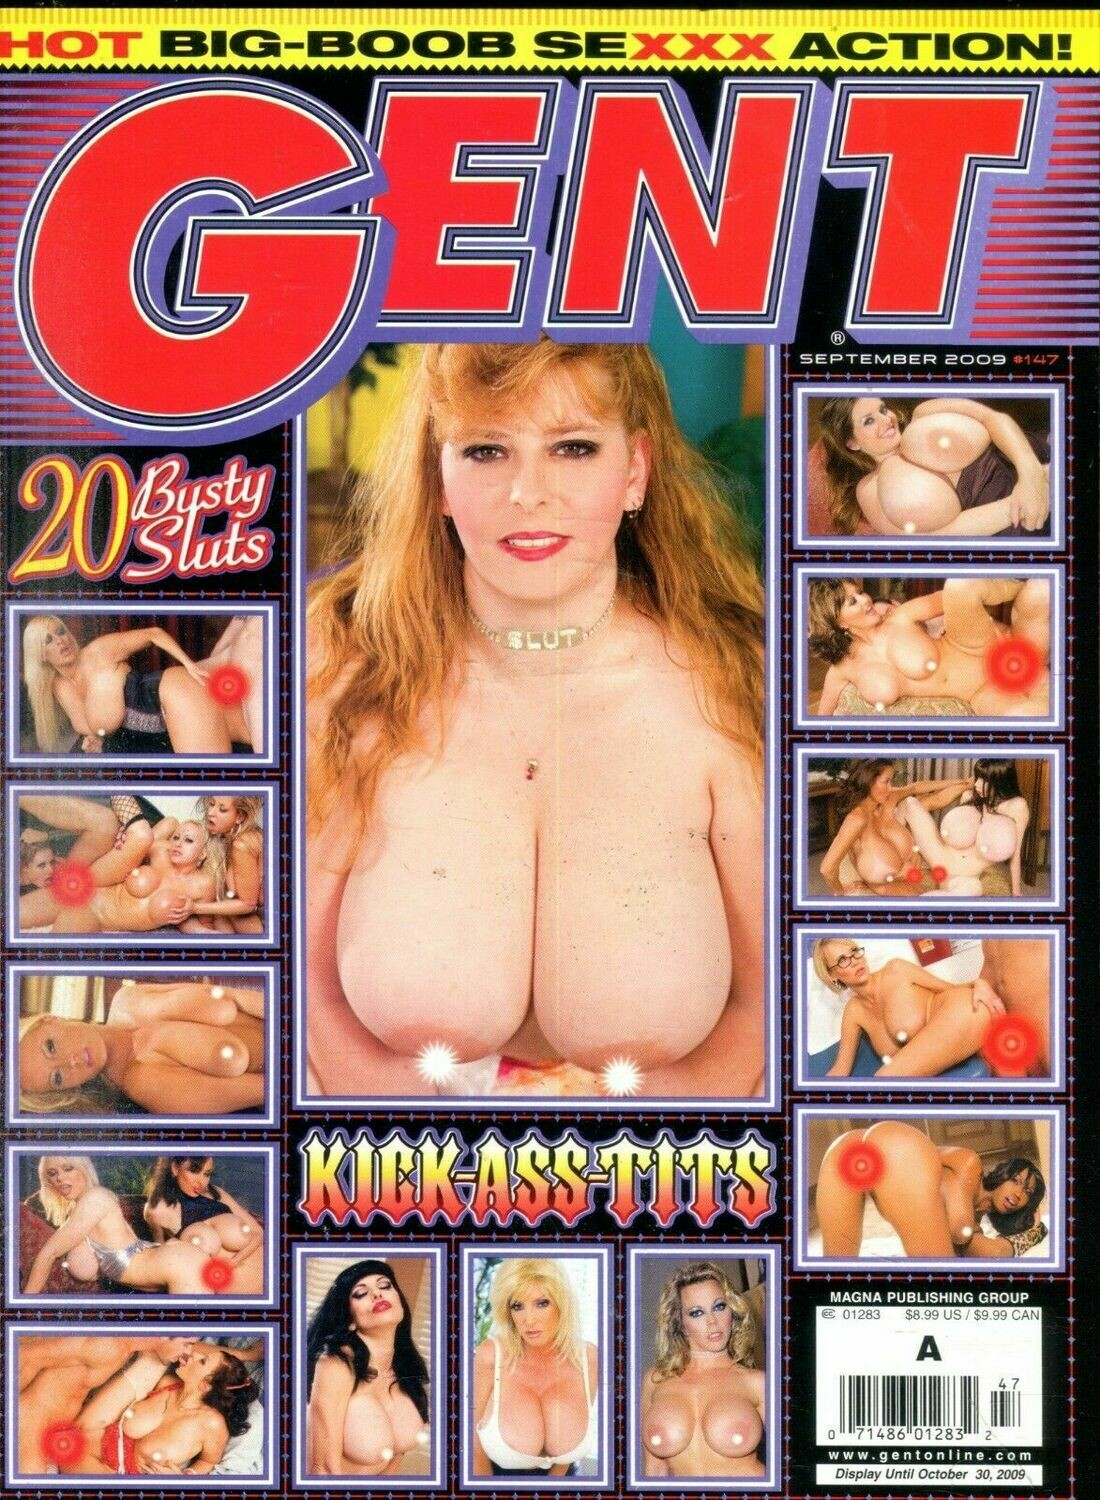 Gent Busty Magazine Big Boob Sexxx Action! September 2009